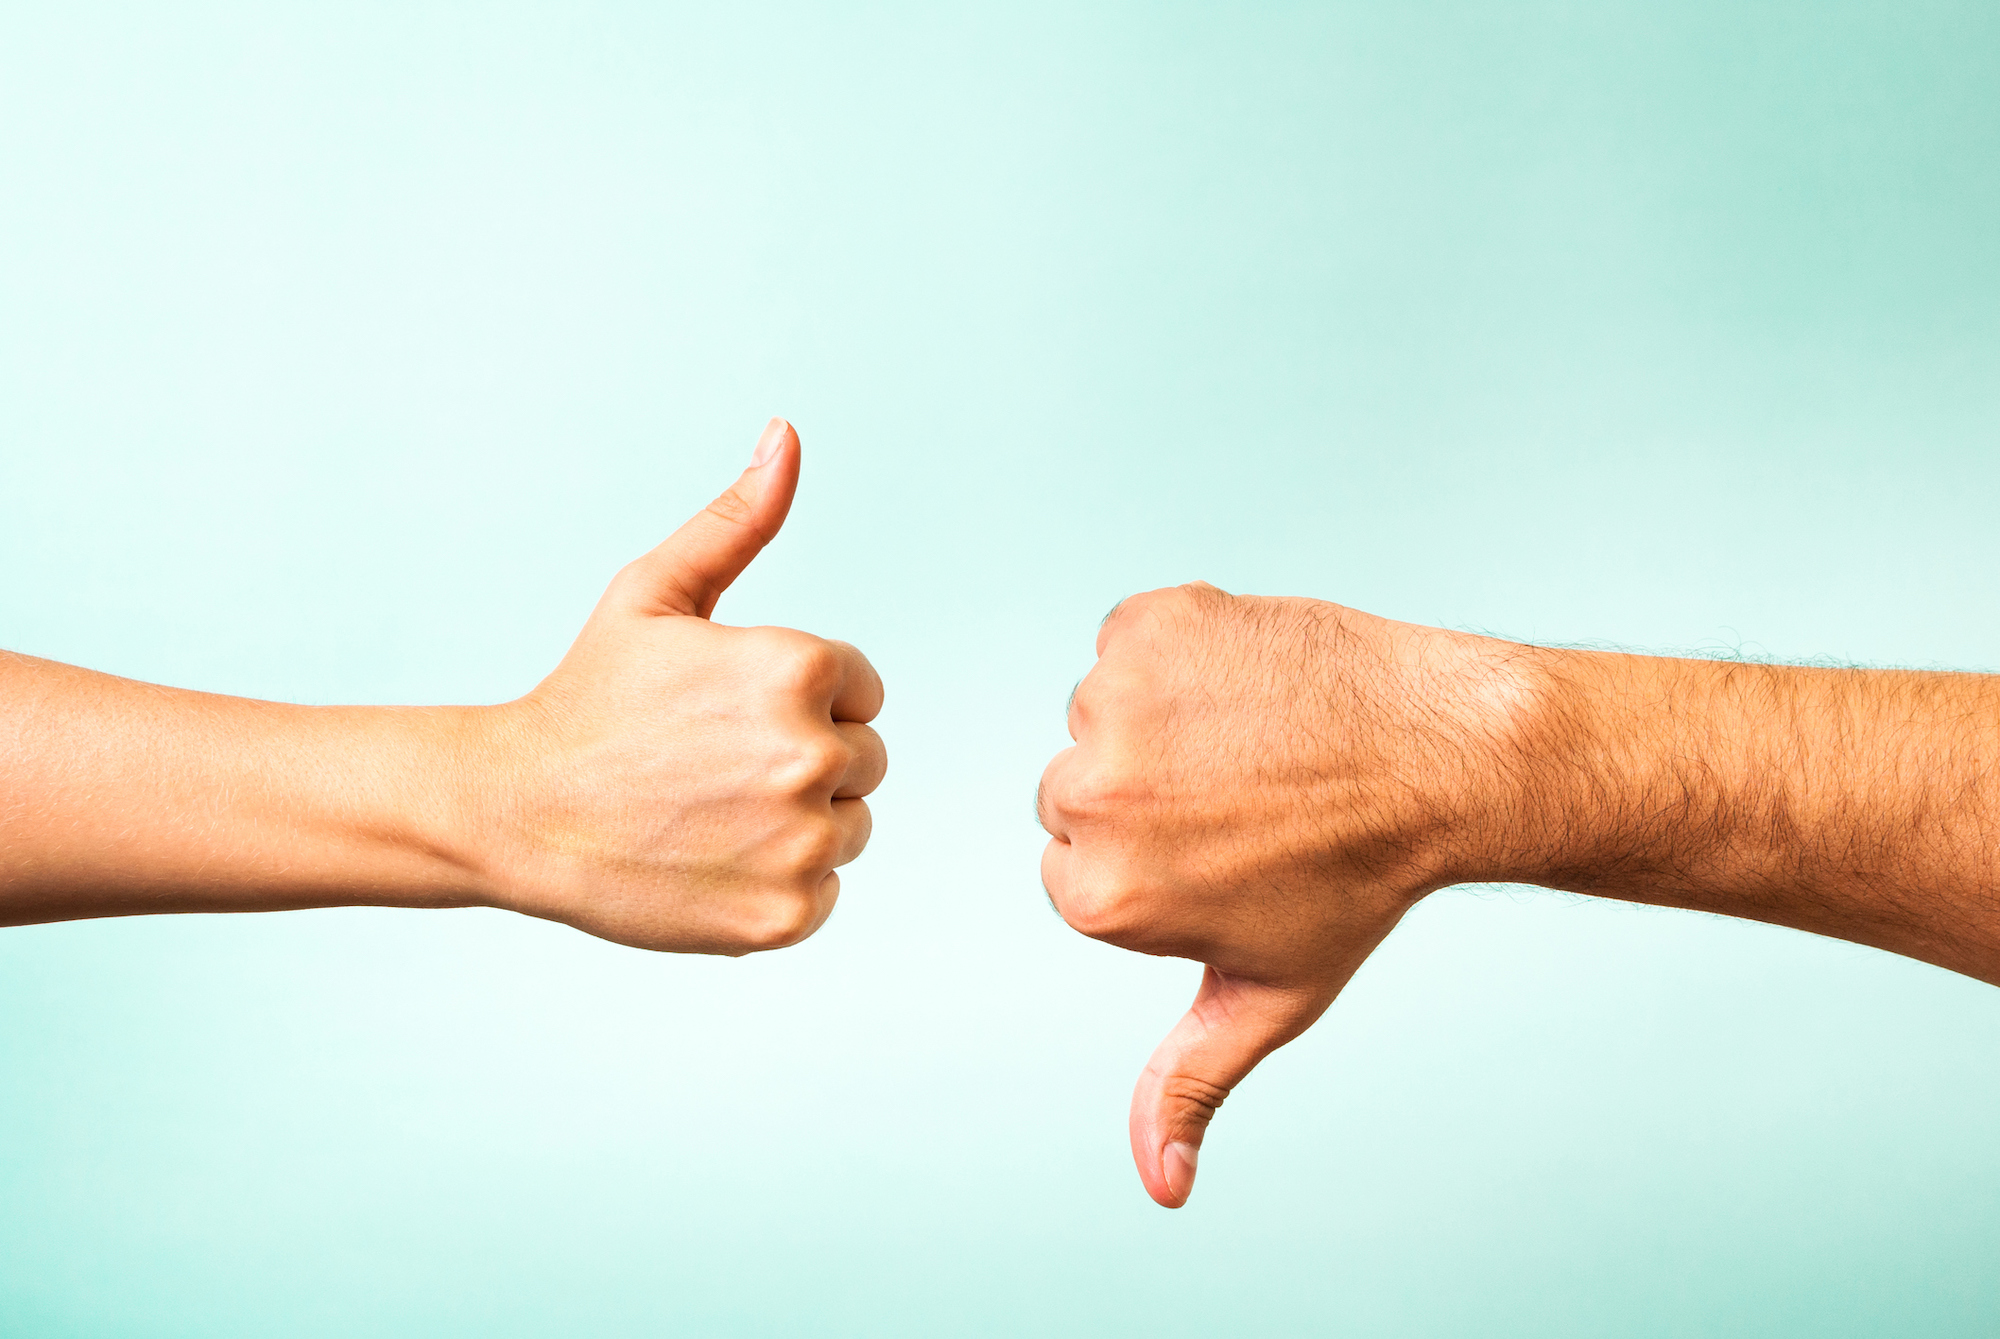 A woman's hand gives a thumbs up opposite of a man's hand giving a thumbs down on a teal background